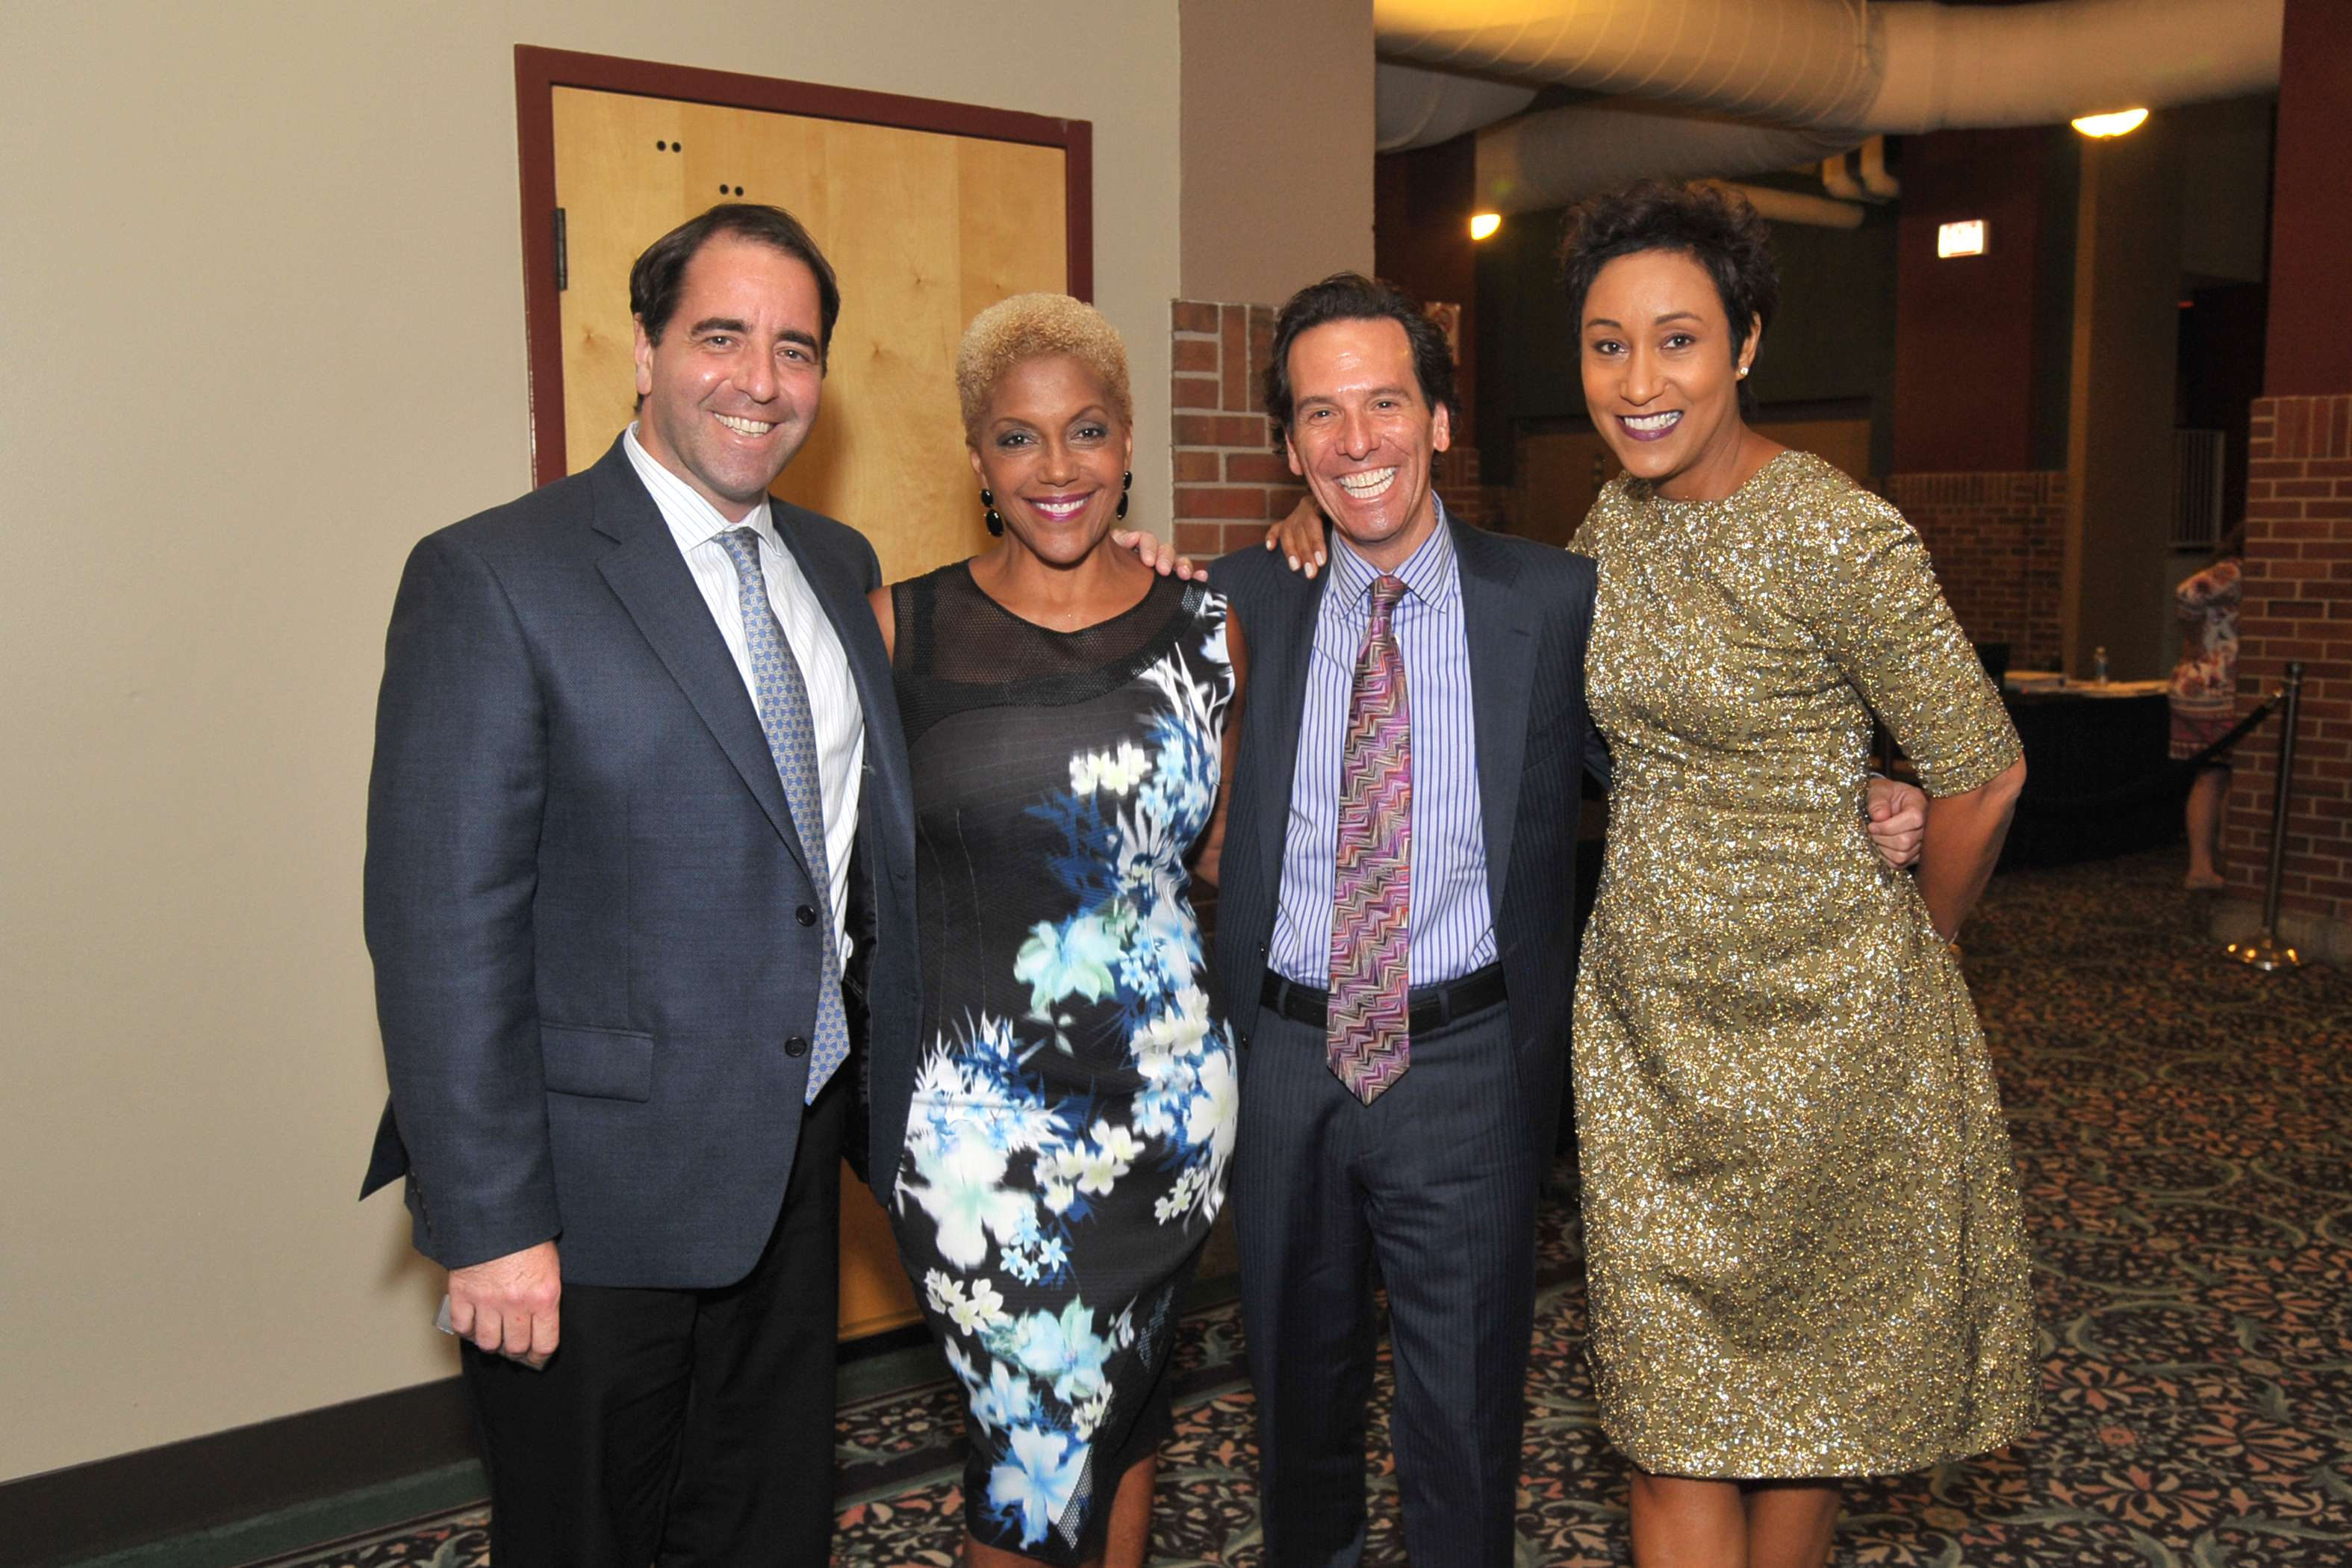 <p>After School Matters supporters Marko Iglendza (far left), Linda Johnson Rice (left center), Neal Zucker (right center), and Desirée Rogers (far right) enjoy the reception at Navy Pier for After School Matters Annual Gala on September 19, 2016. Photo credit: Dan Rest</p>